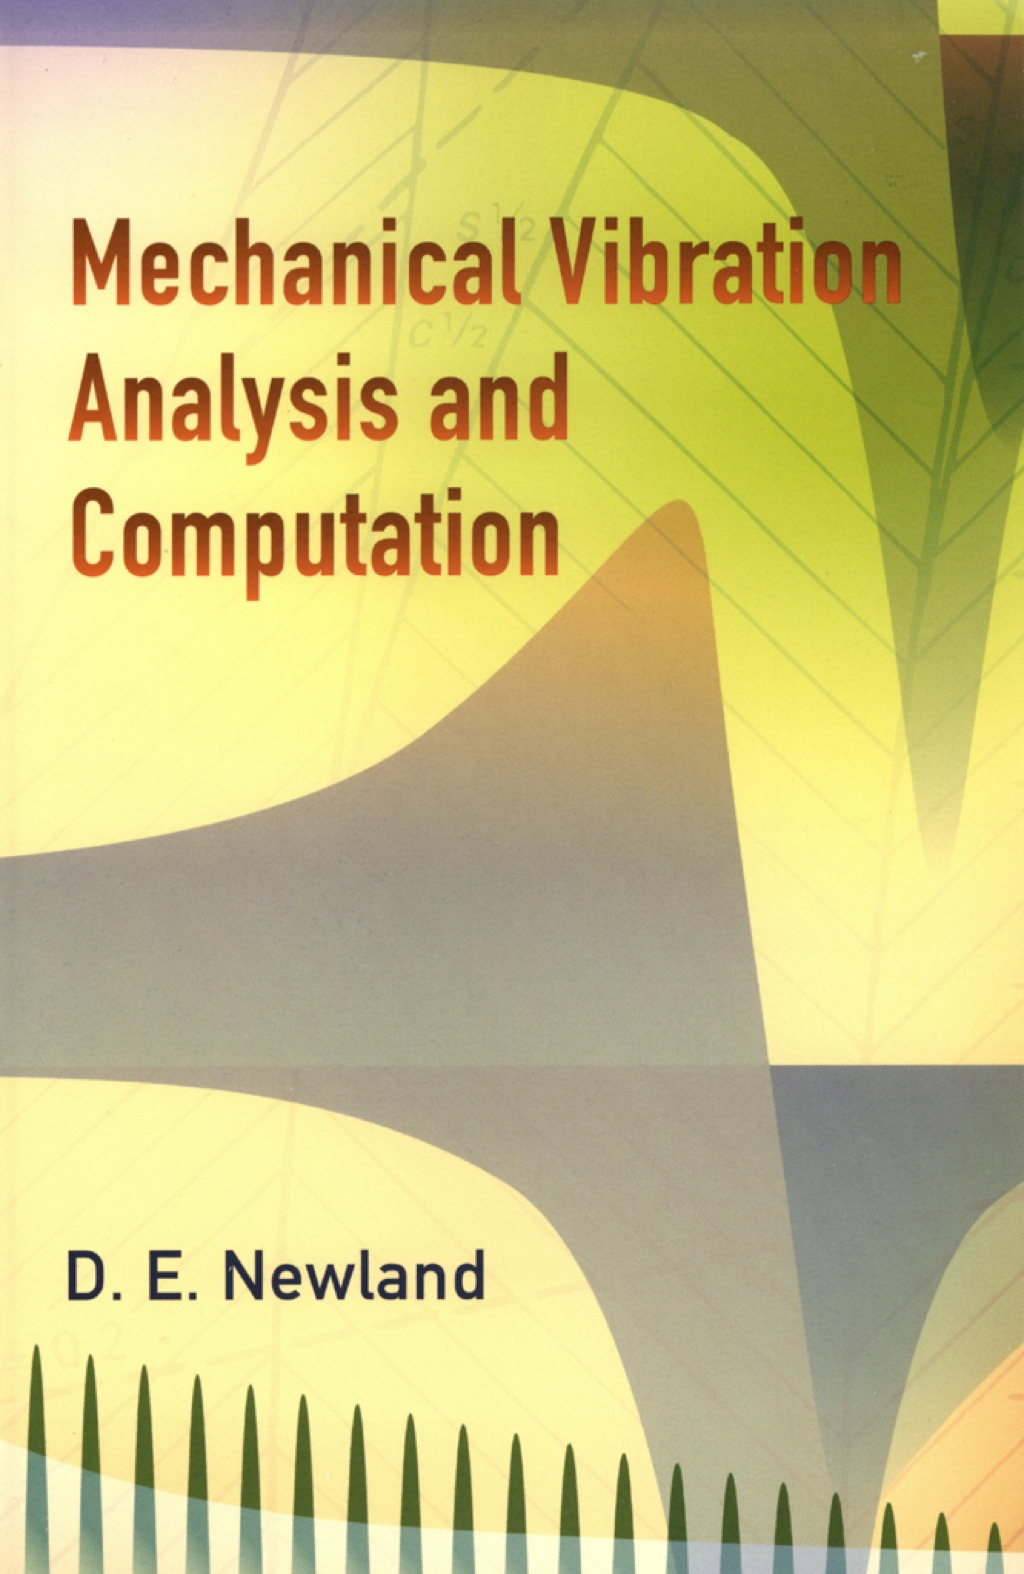 Mechanical Vibration Analysis and Computation (ebook) eBooks